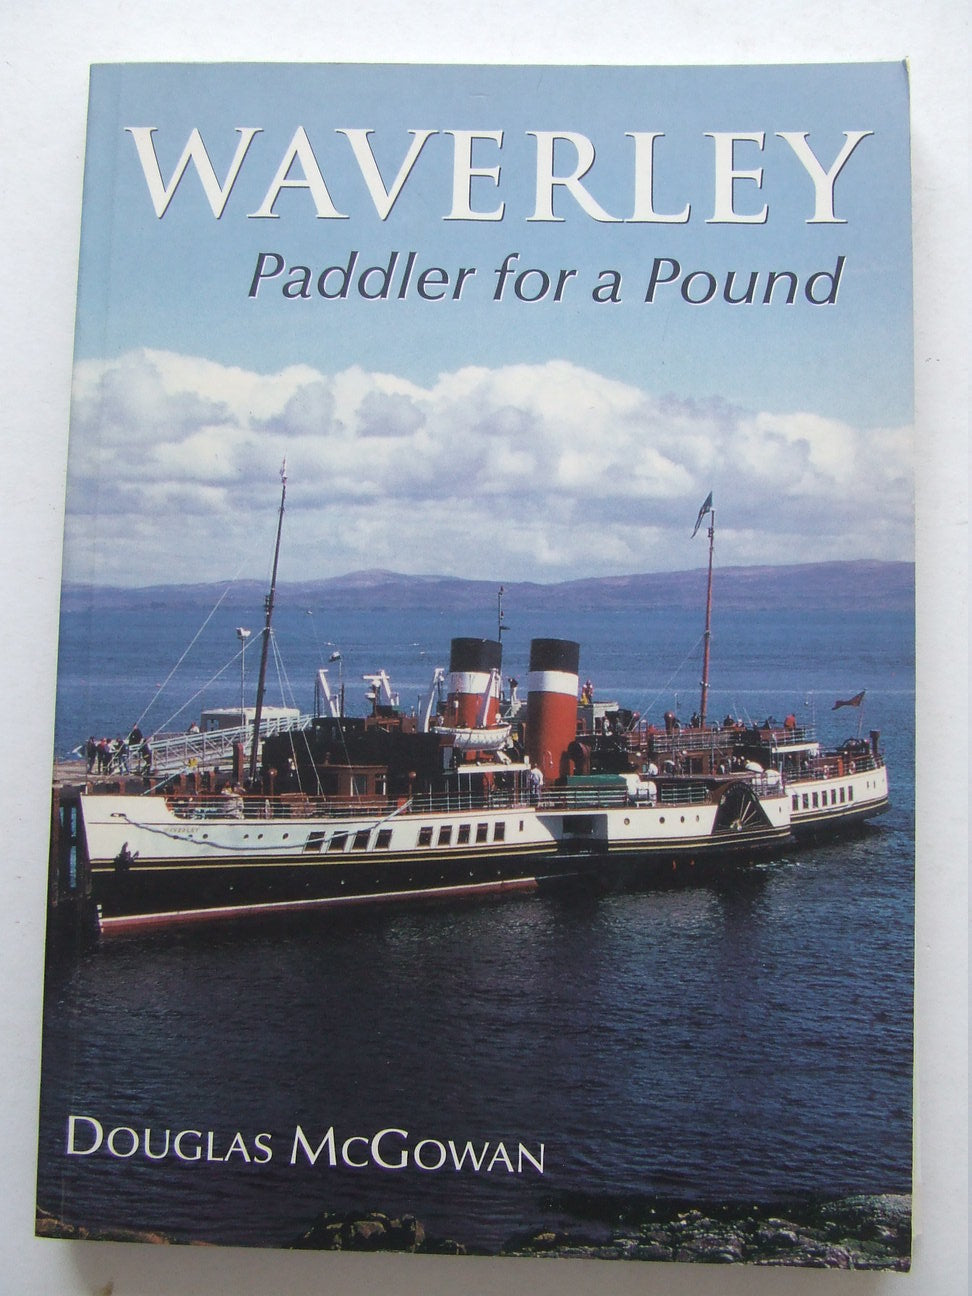 Waverley, paddler for a pound